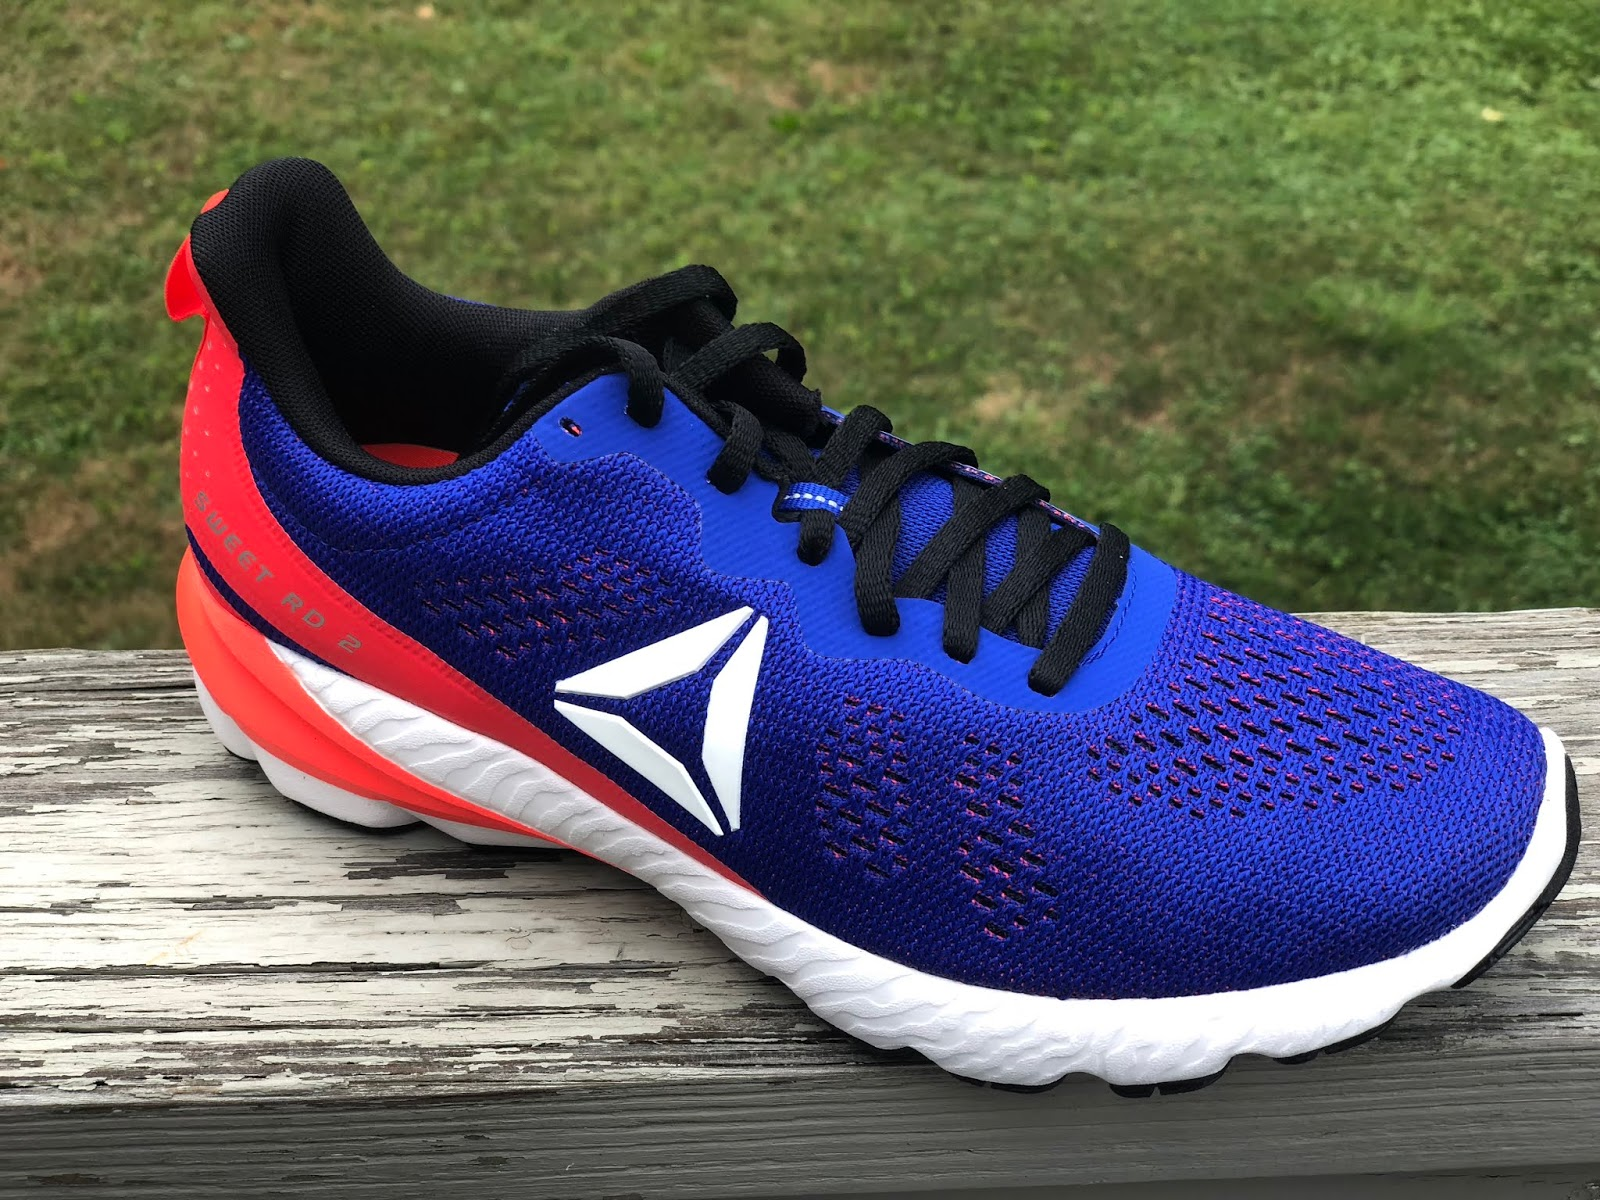 8bef5a2e6cfd71 Road Trail Run  Reebok Sweet Road 2 Review  Easy Riding. Easy ...